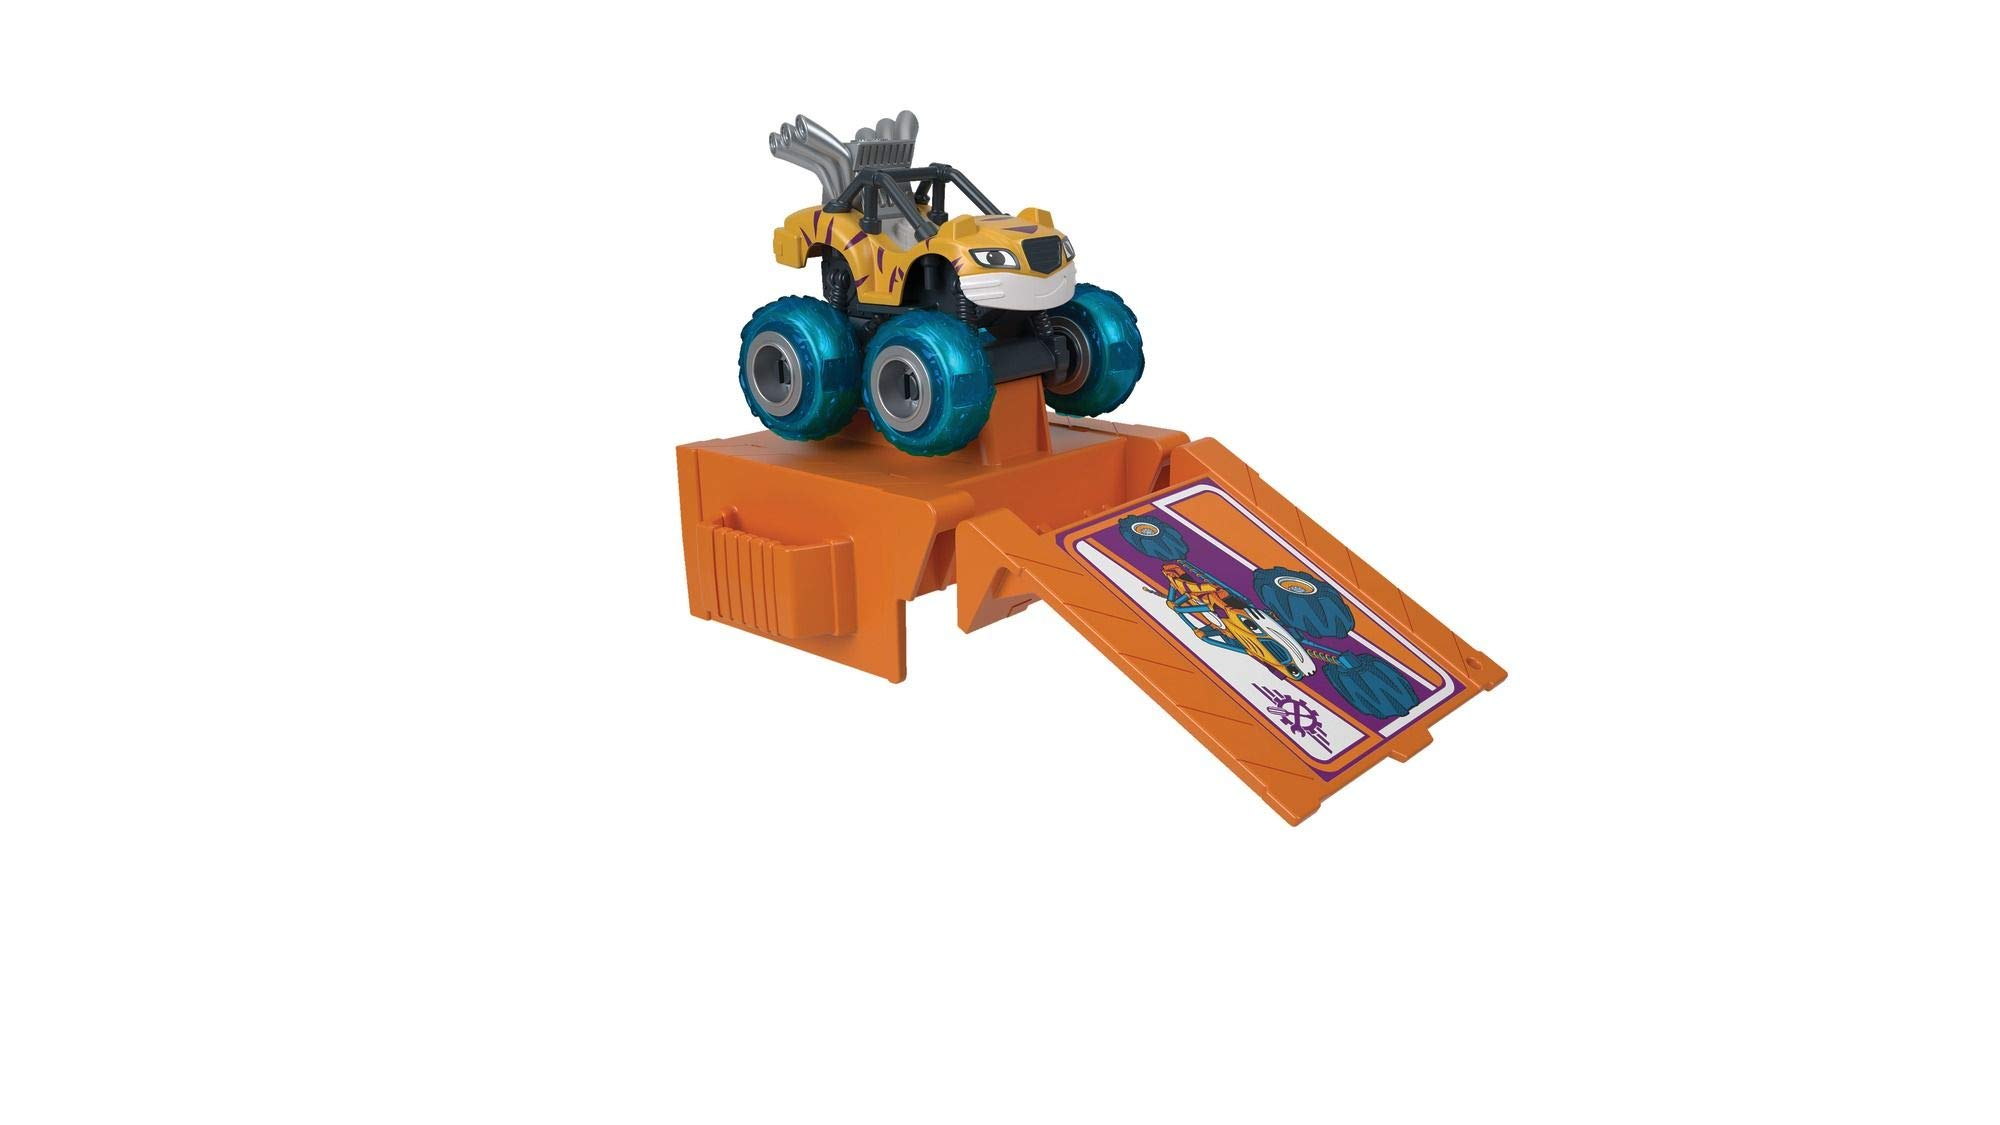 Fisher-Price Nickelodeon Blaze & the Monster Machines Tune-Up Tires, Stripes by Fisher-Price (Image #5)